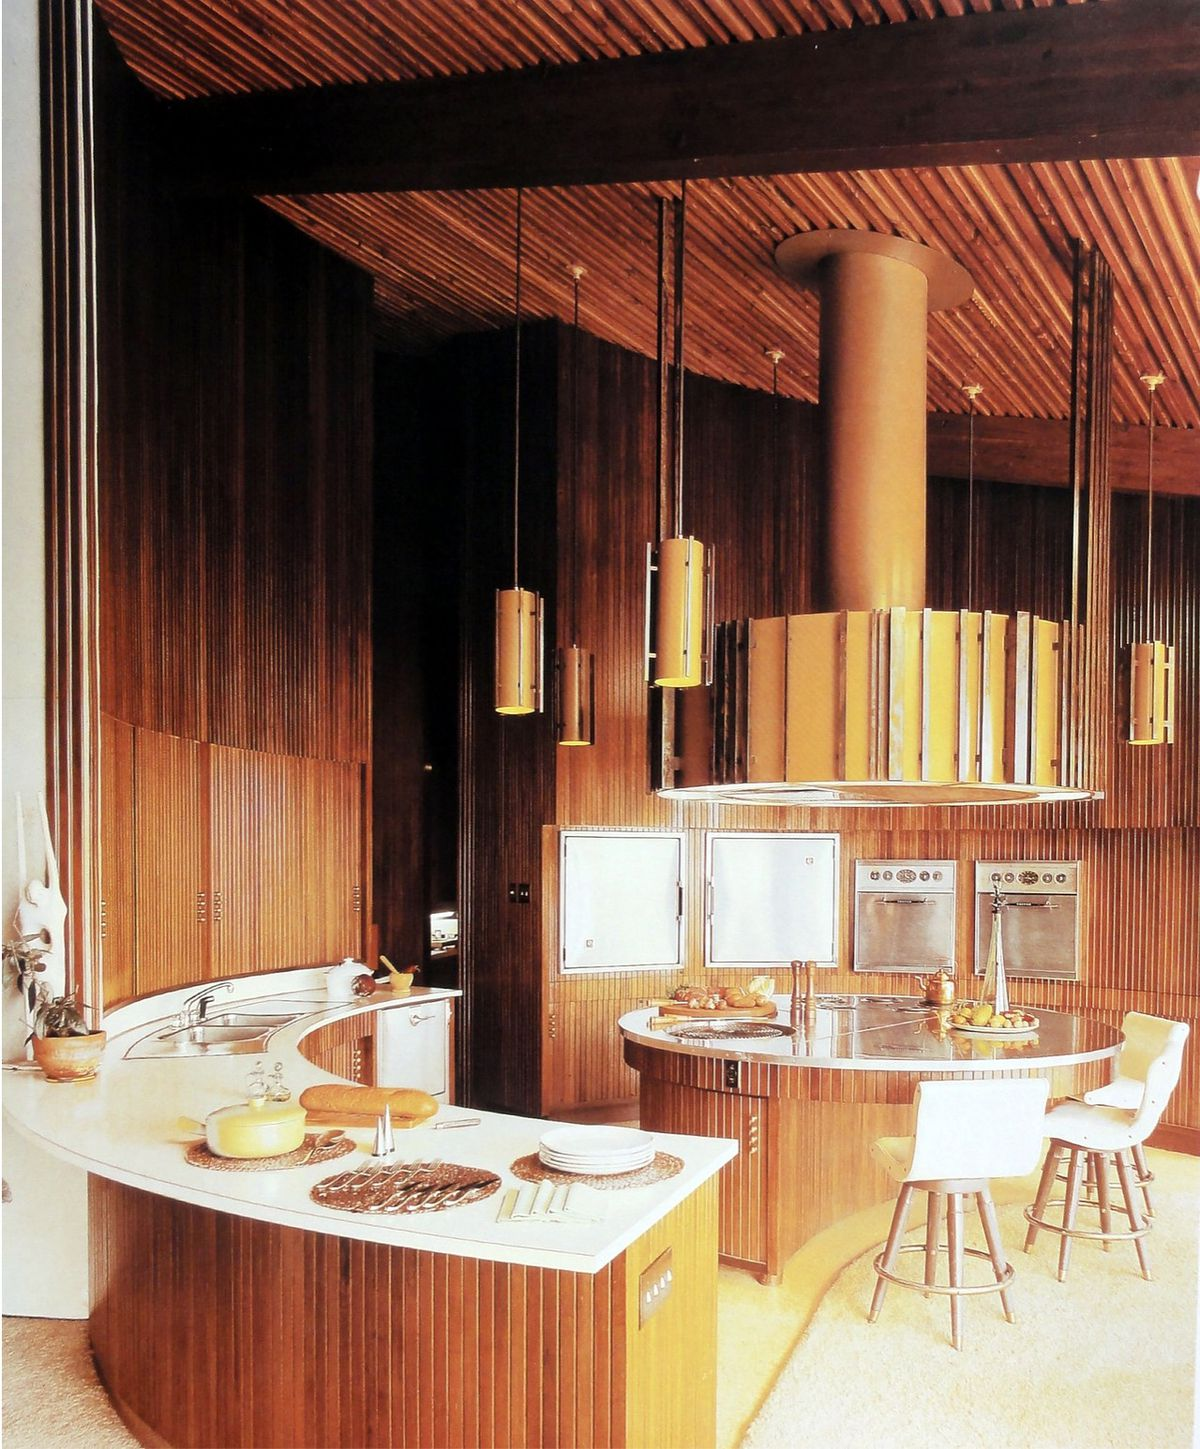 Archival photo showing the kitchen with warm wood walls.